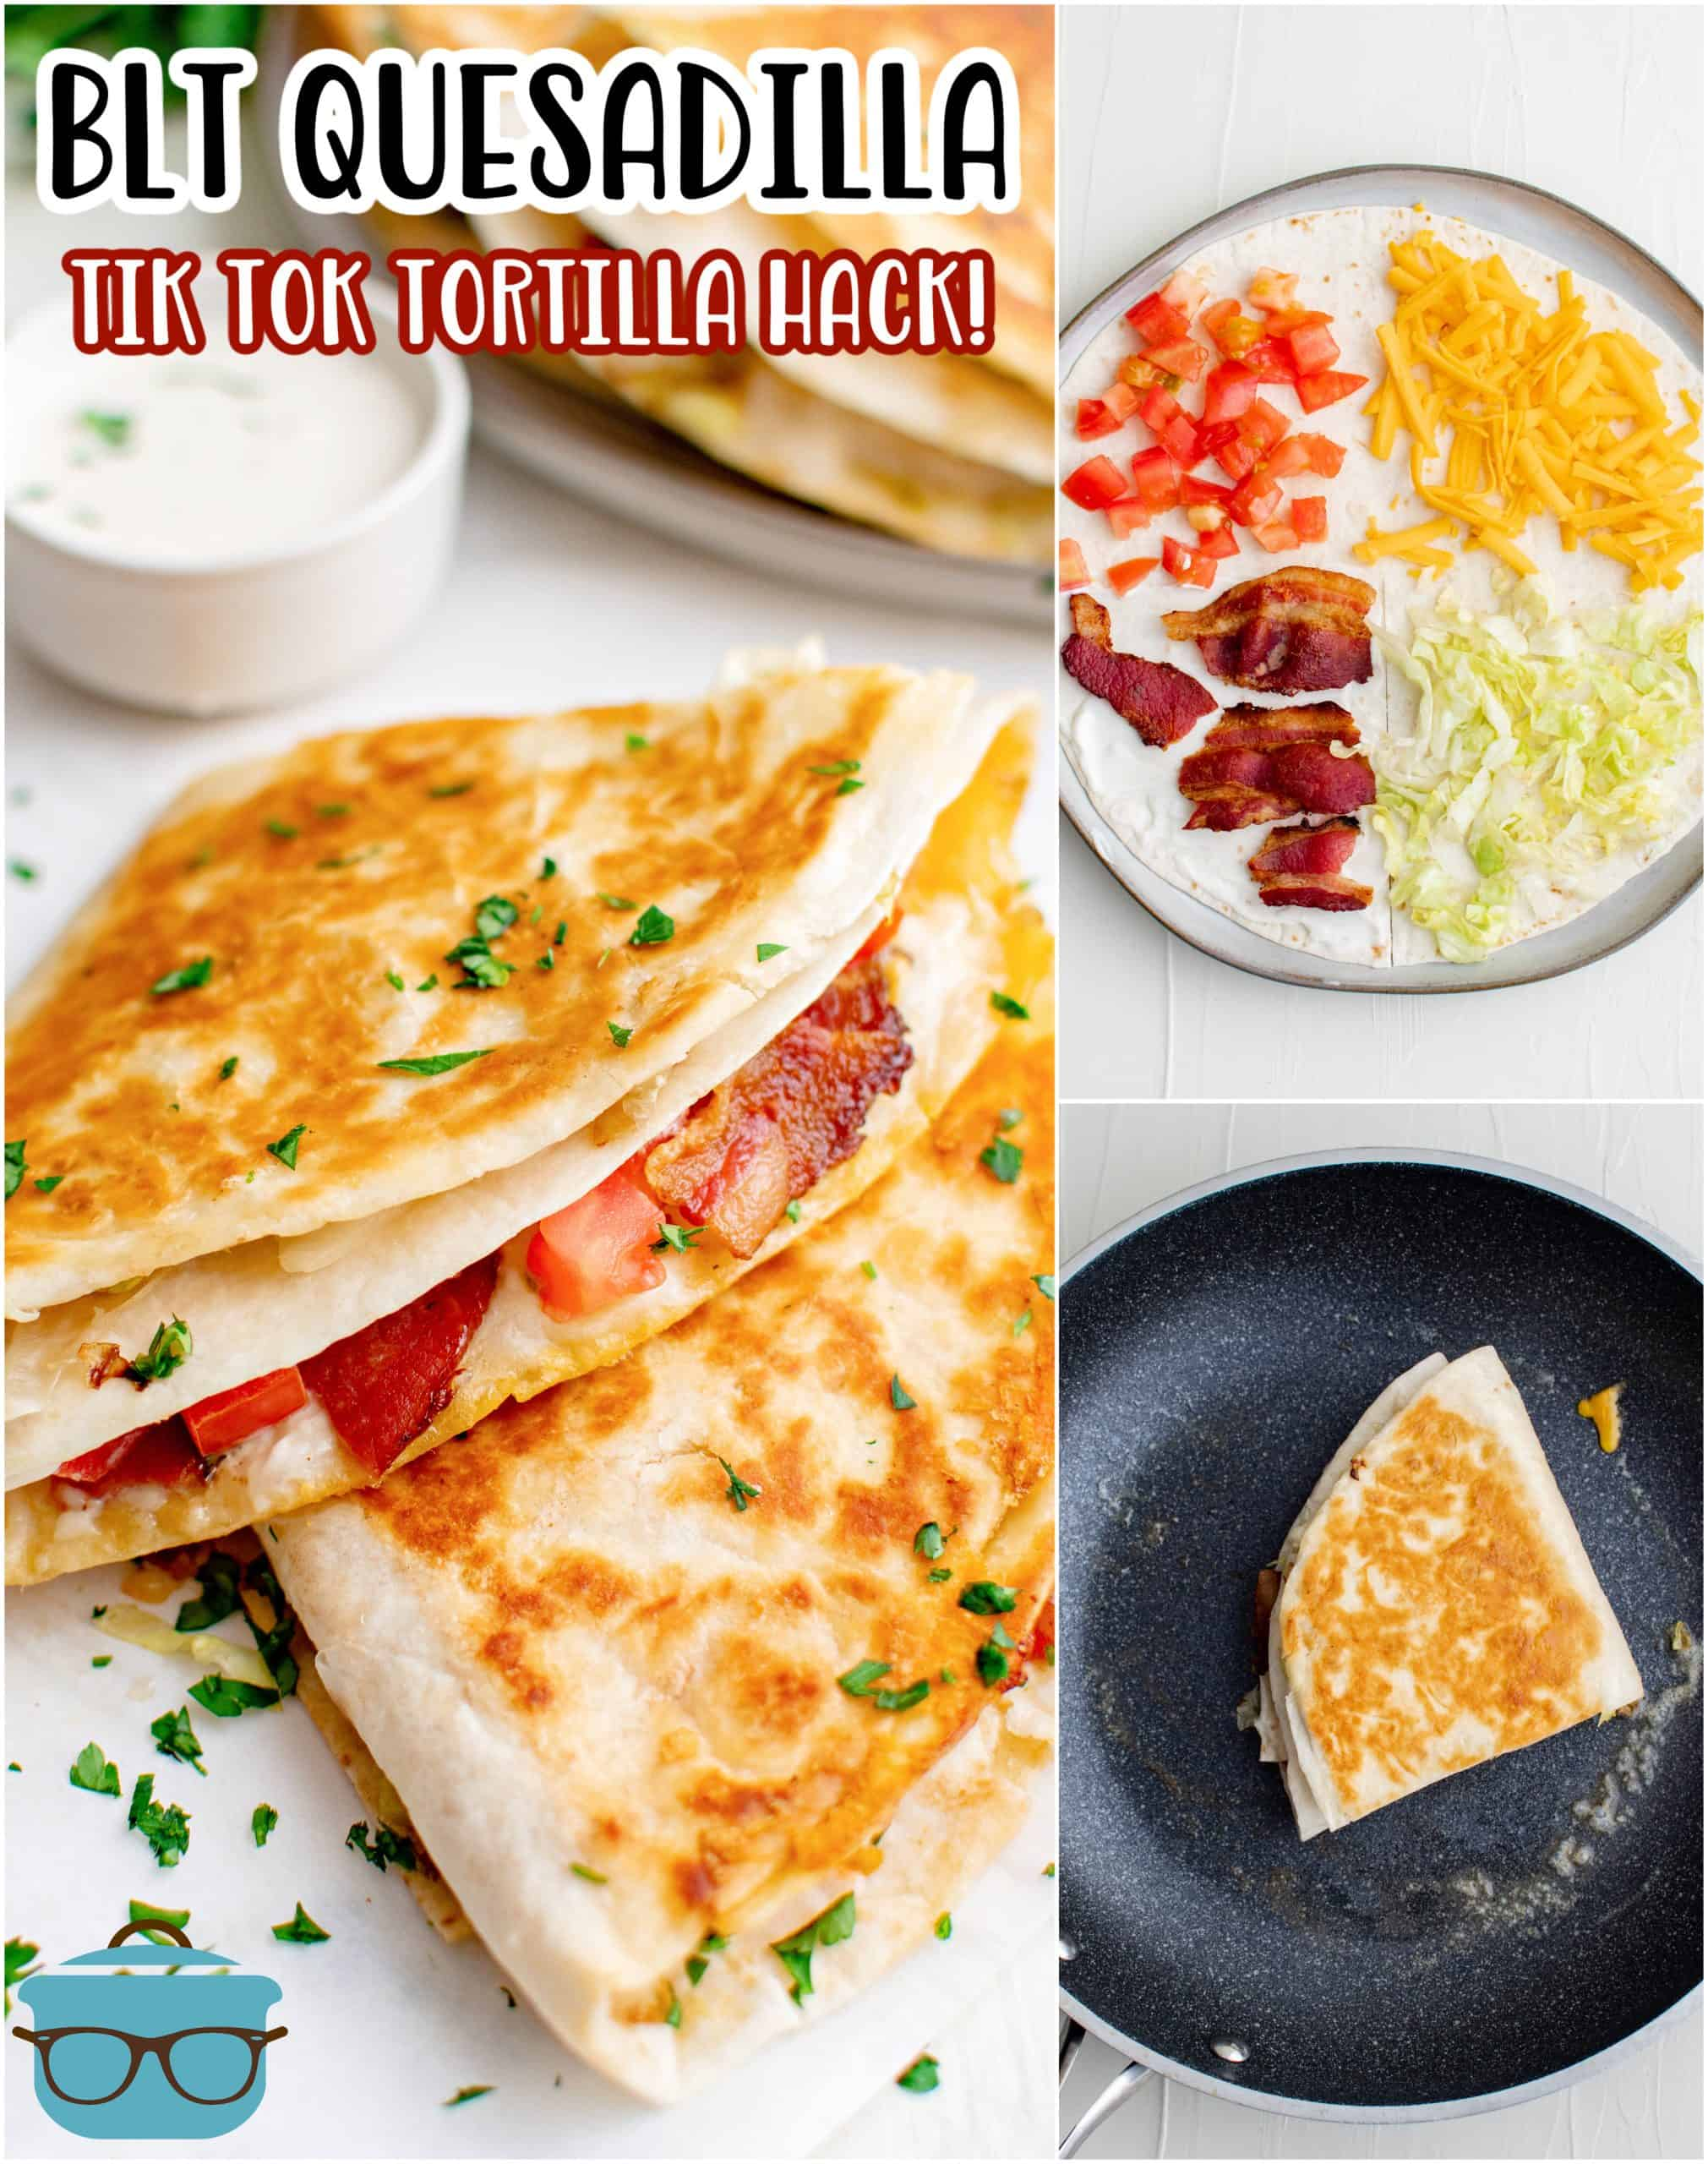 Looking for a fun and quick recipe that is absolutely delicious and has minimal ingredients? You need to make this BLT Quesadilla! A fun TikTok Tortilla hack we love.